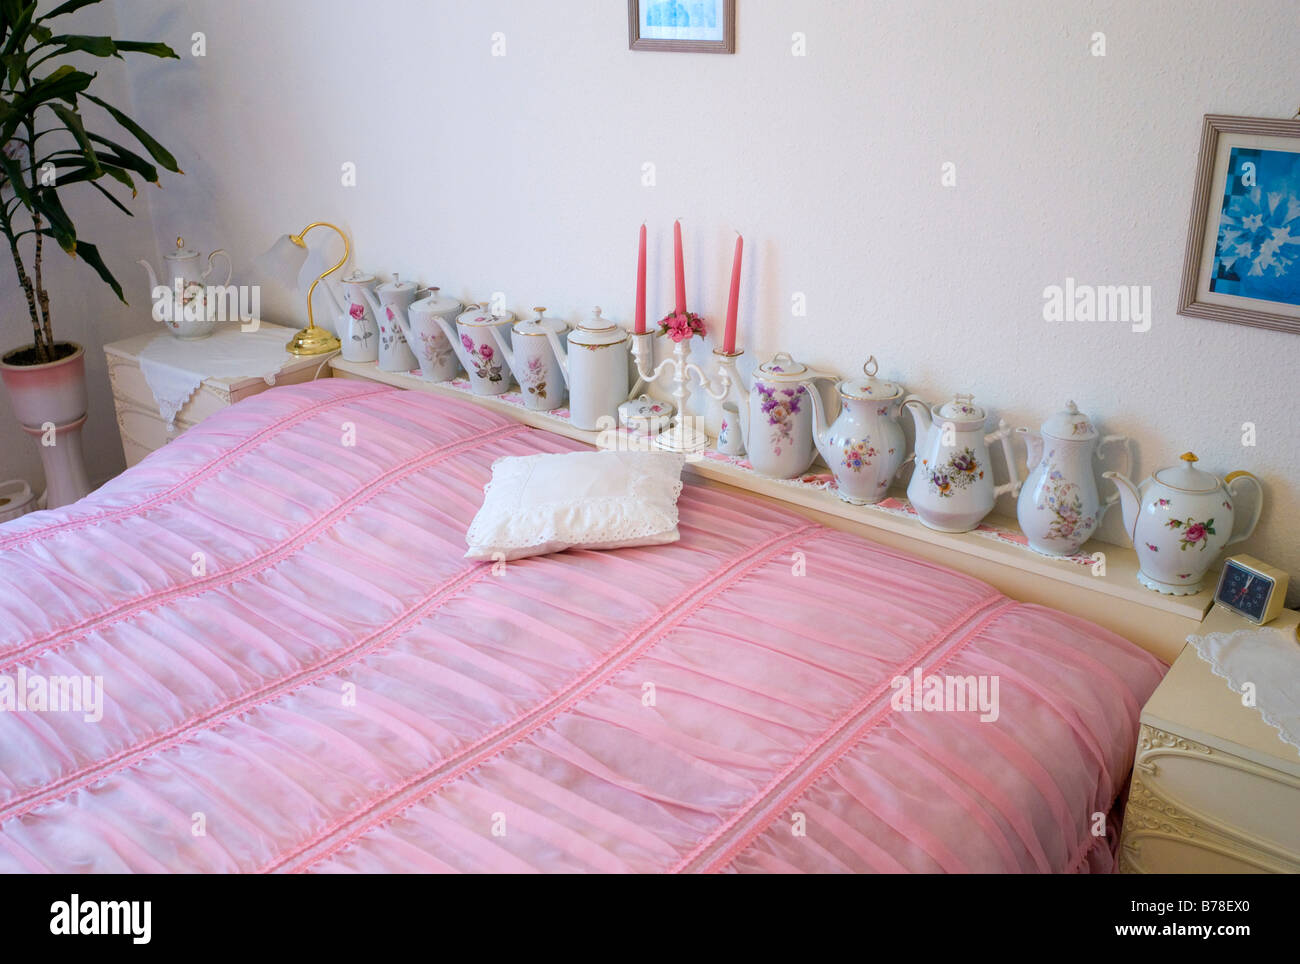 Old fashioned bedroom with pink bedspread and teapots, Germany, Europe Stock Photo